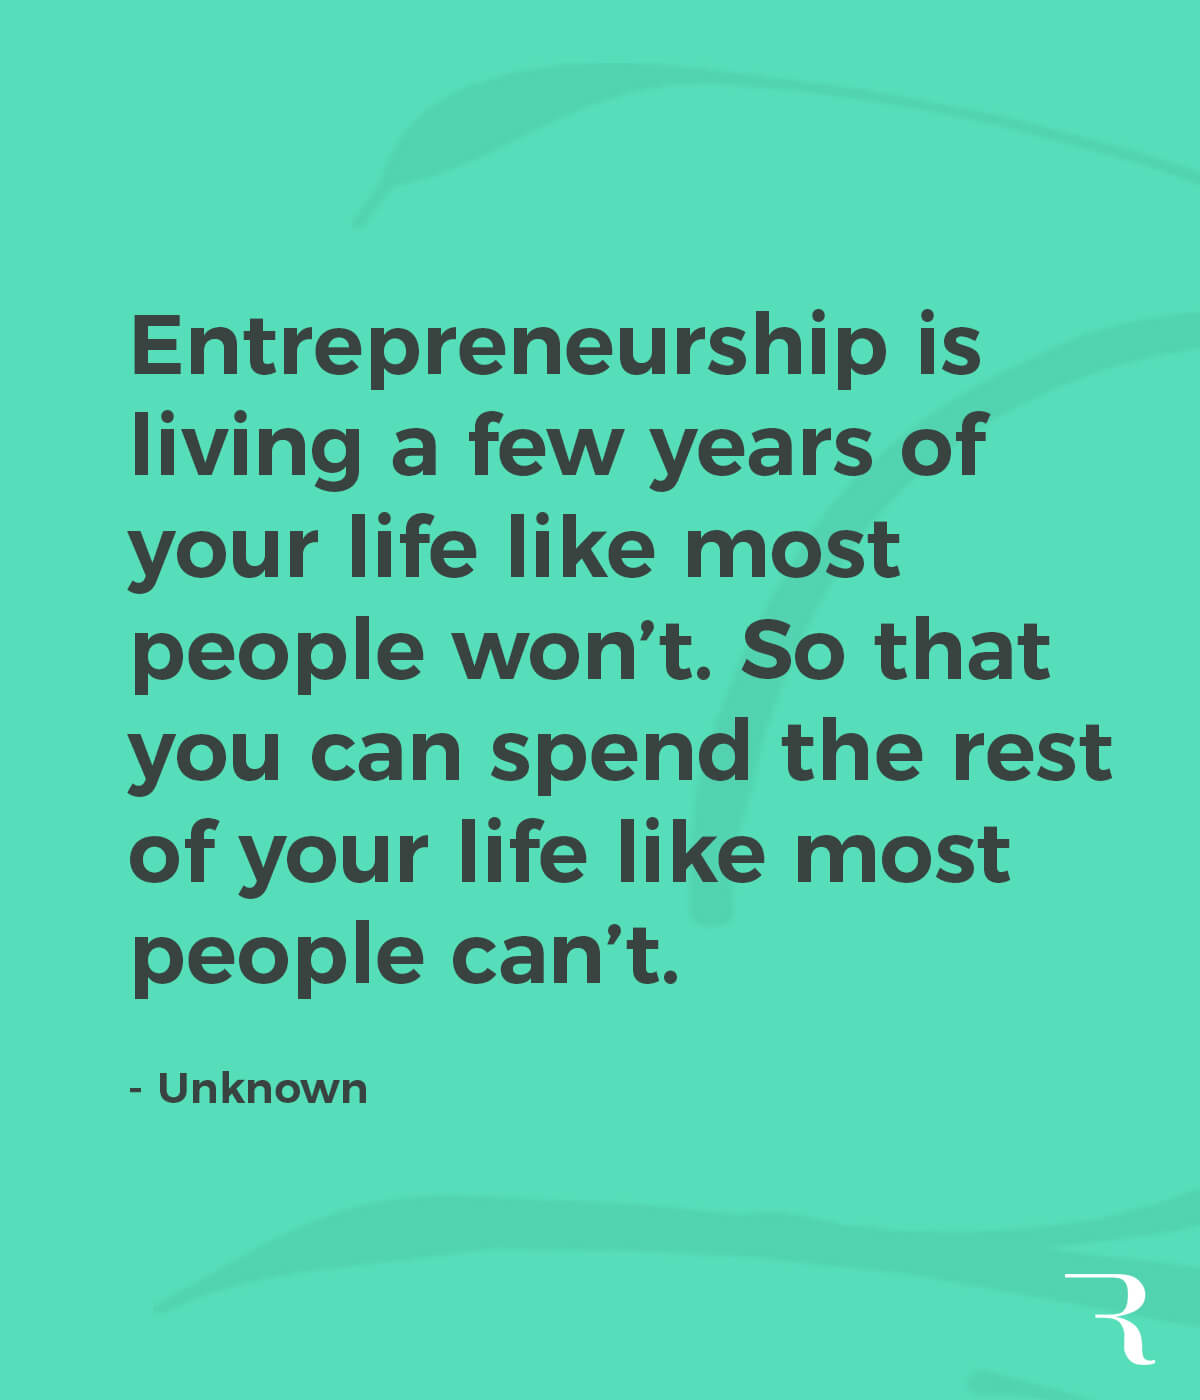 """Motivational Quotes: """"Live a few years of like most people won't, so you can spend the rest like most people can't."""" 112 Motivational Quotes to Be a Better Entrepreneur"""